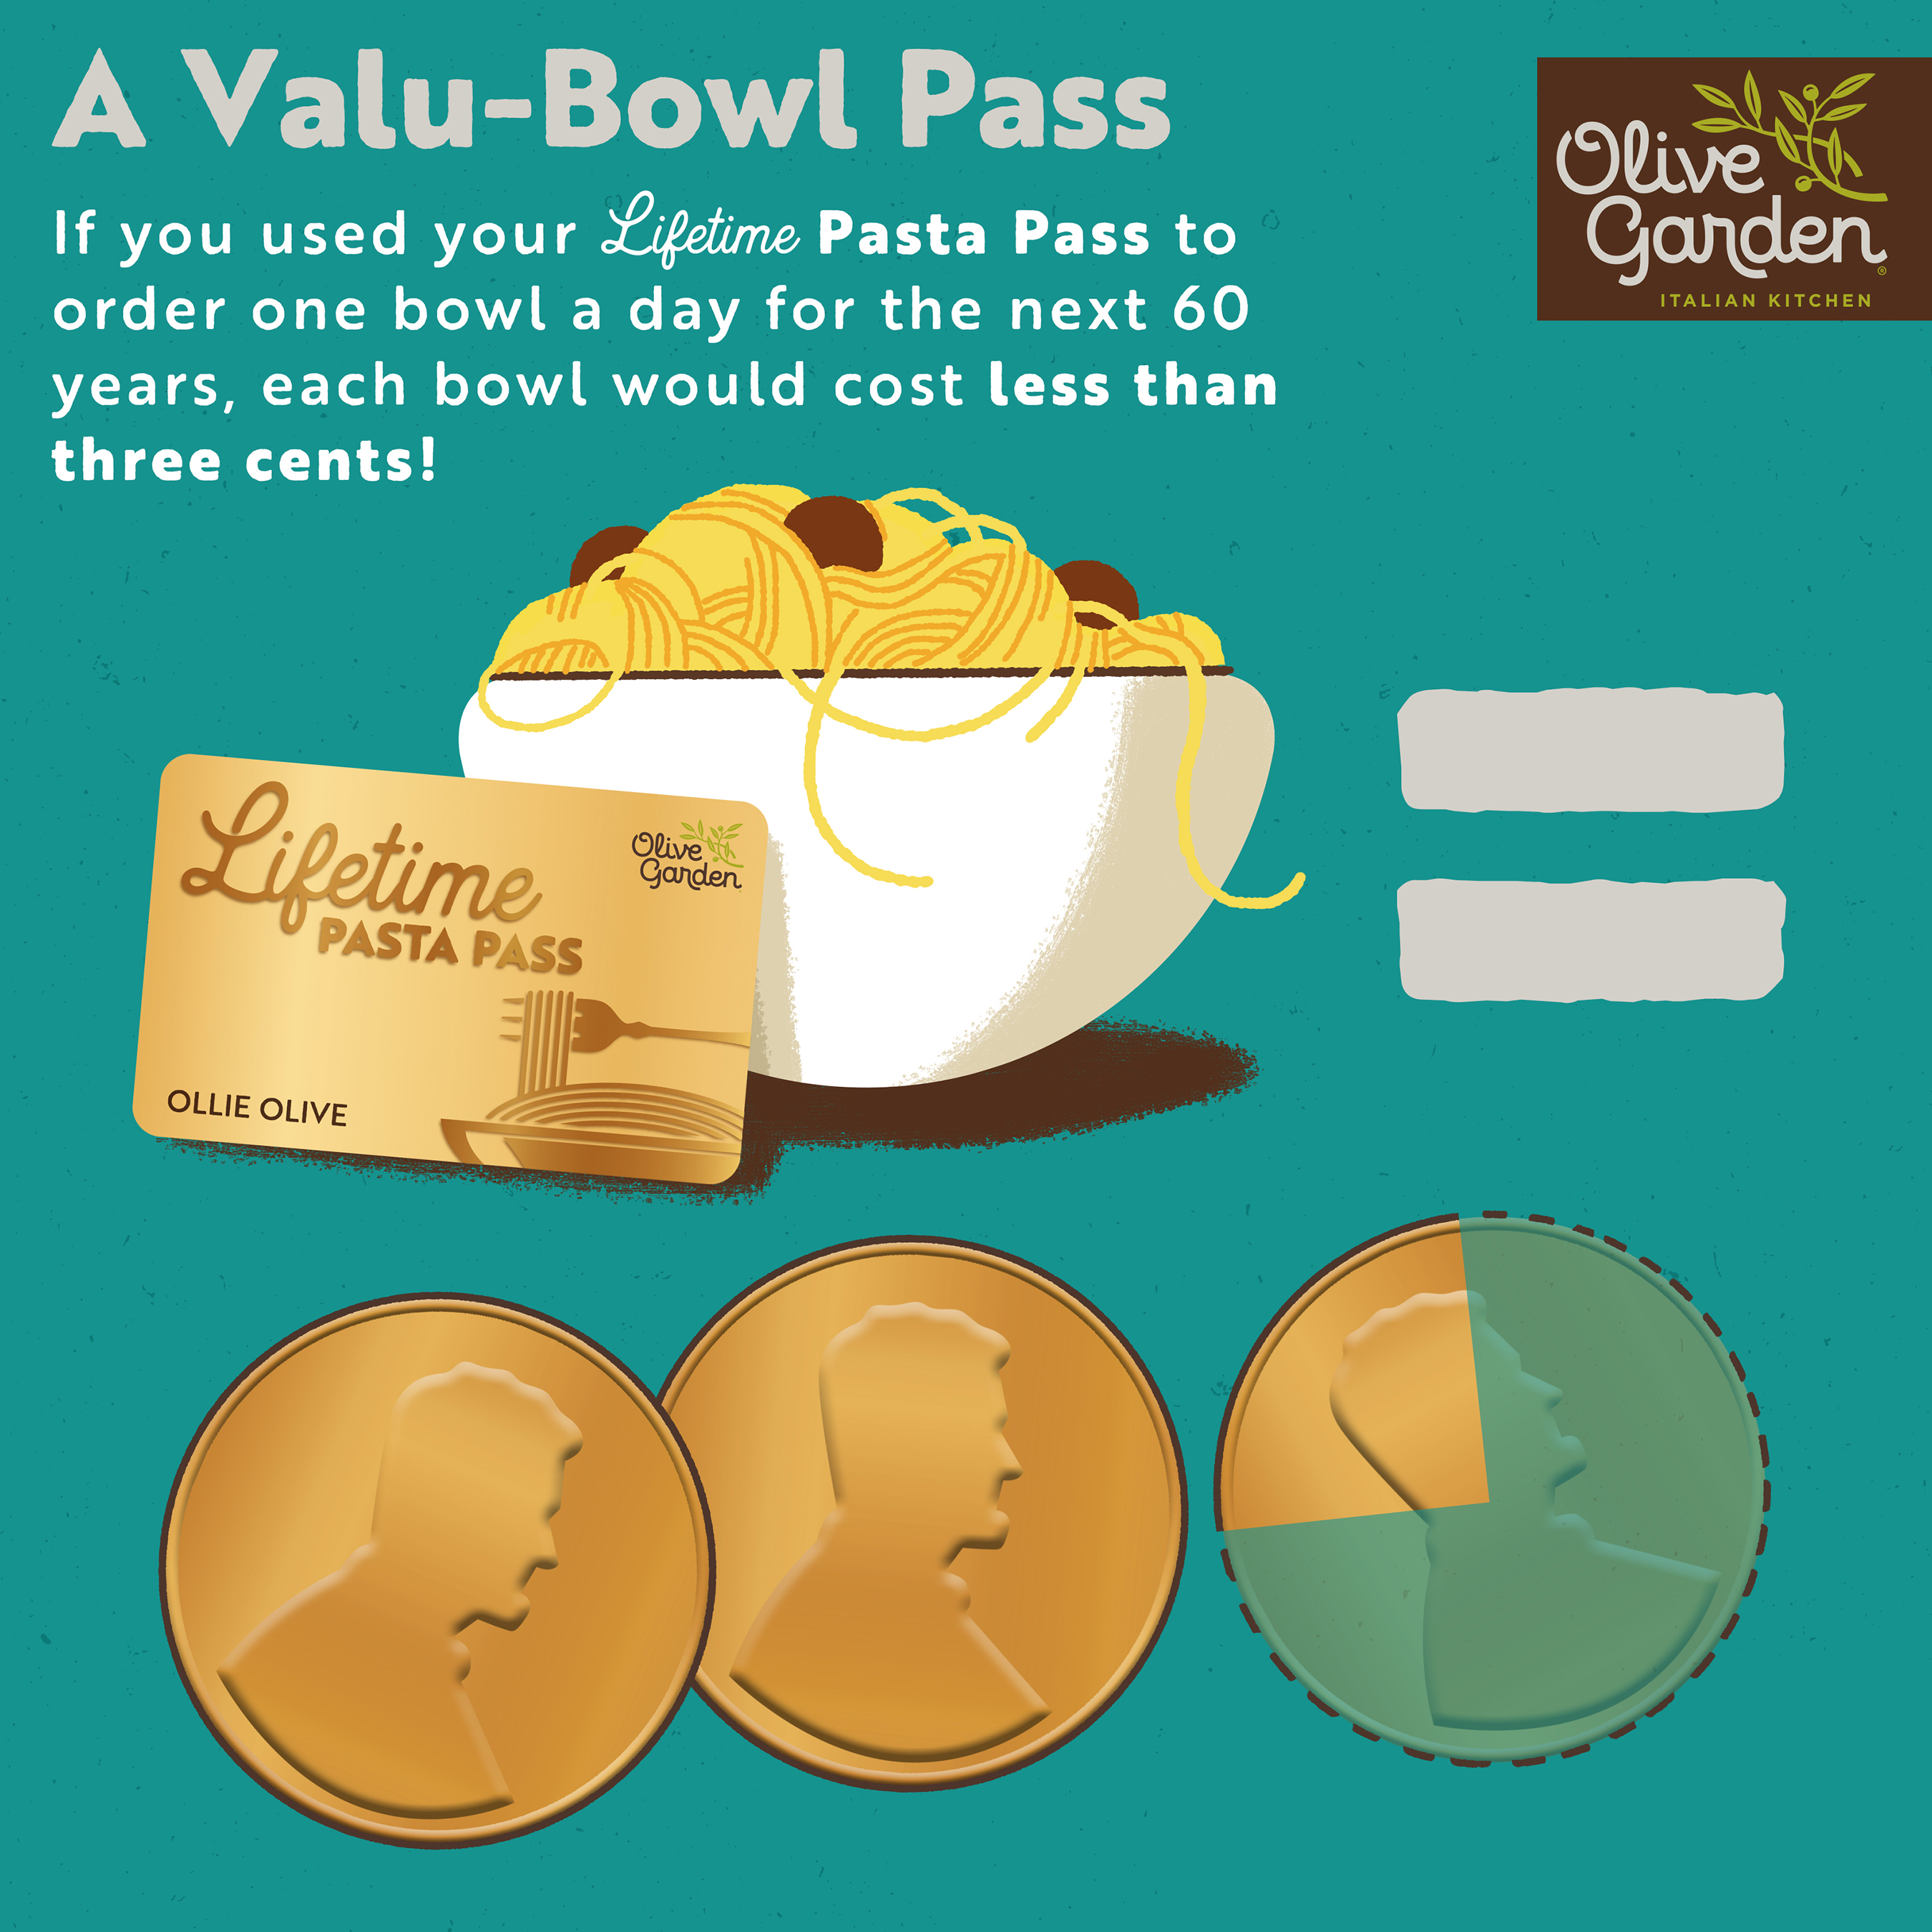 If you used your Olive Garden Lifetime Pasta Pass to order one bowl a day for the next 60 years, each bowl would cost less than three cents.